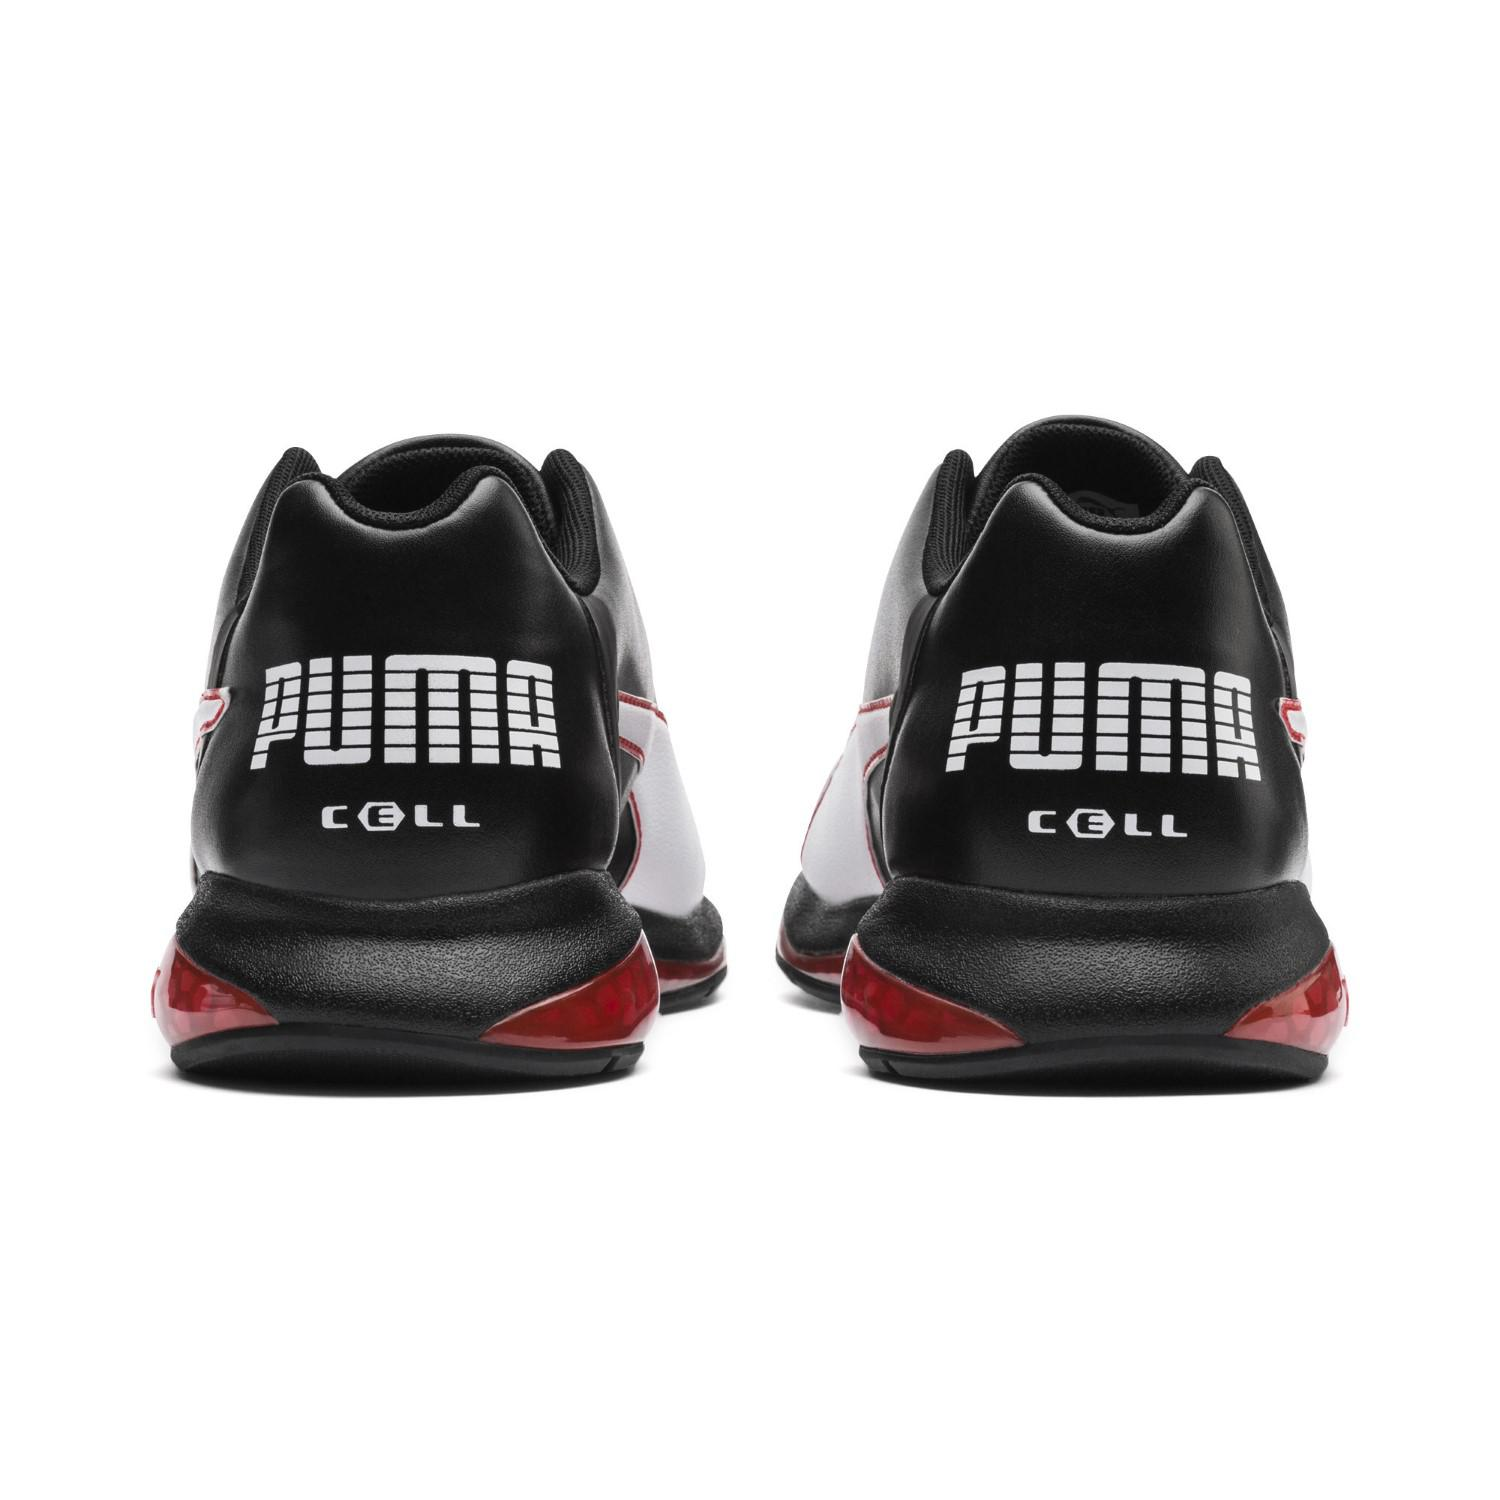 PUMA - Black Cell Ultimate Sl Running Shoes for Men - Lyst. View fullscreen db62c9217